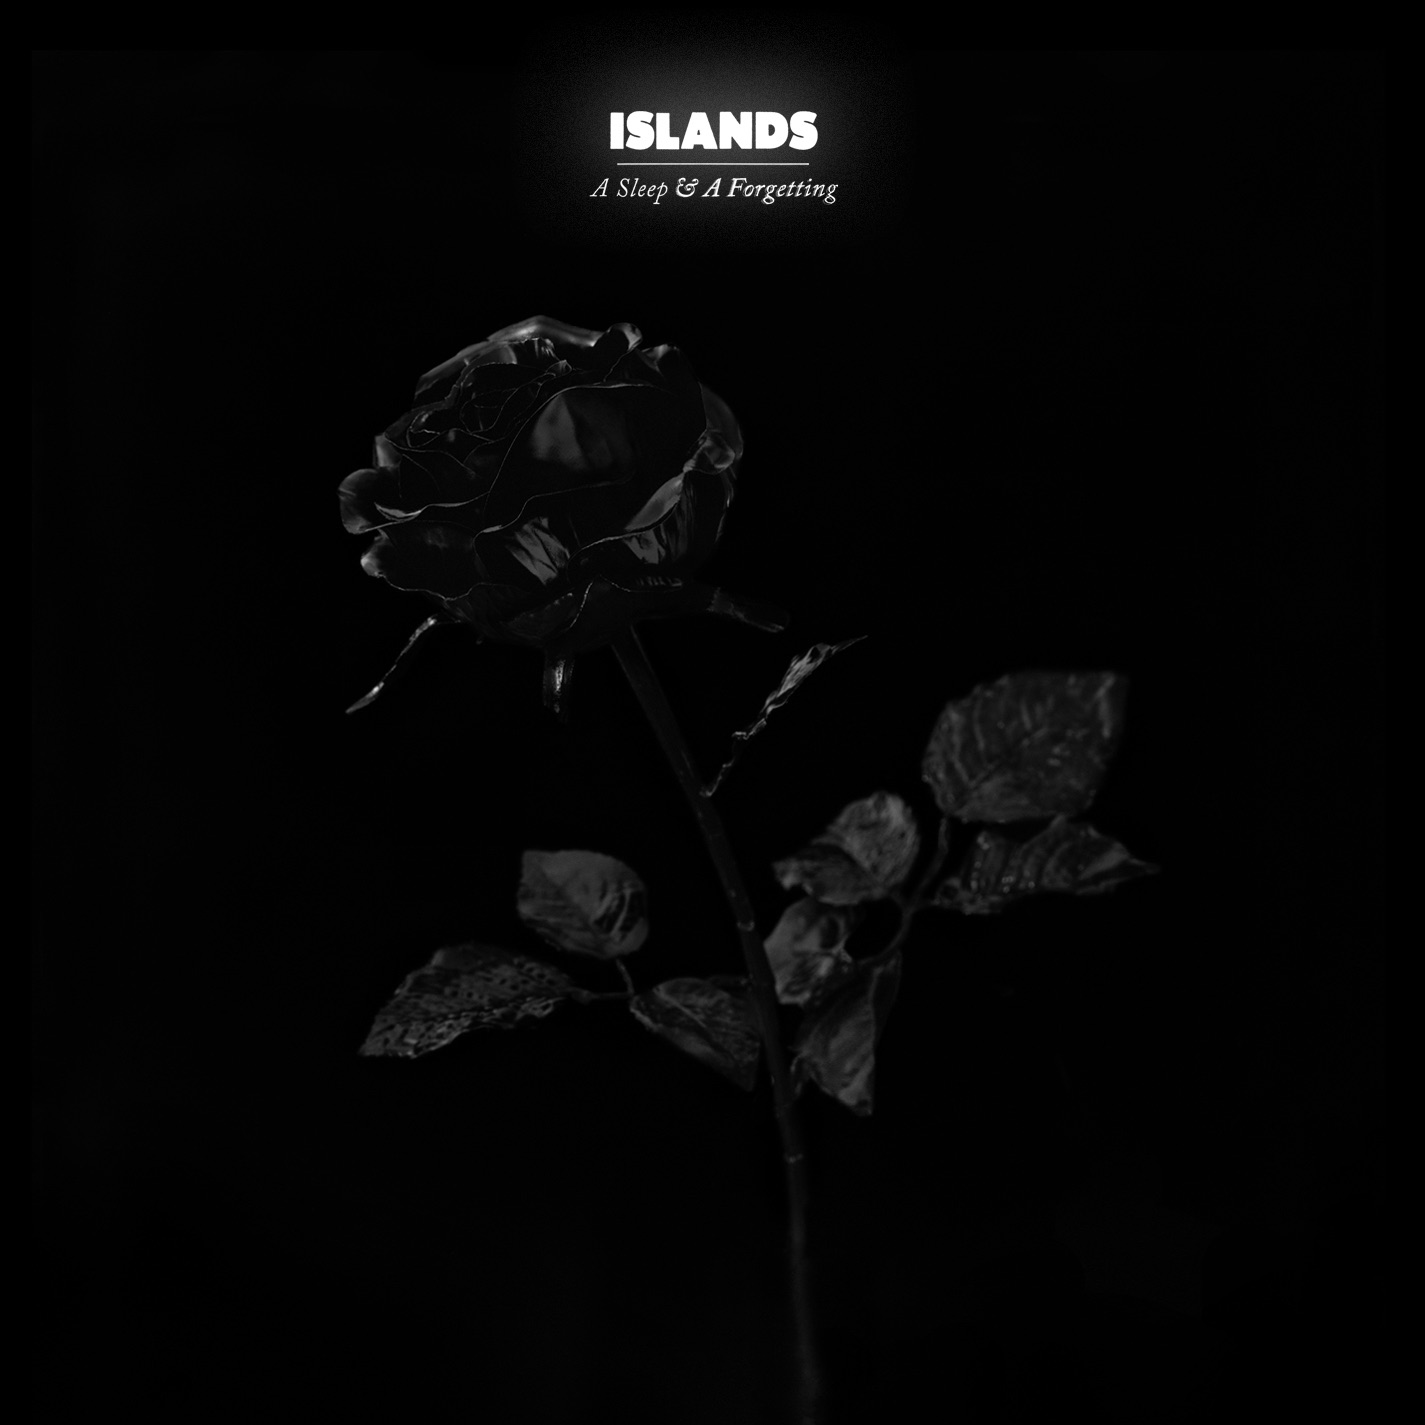 Islands album A Sleep & A Forgetting (Deluxe Edition)